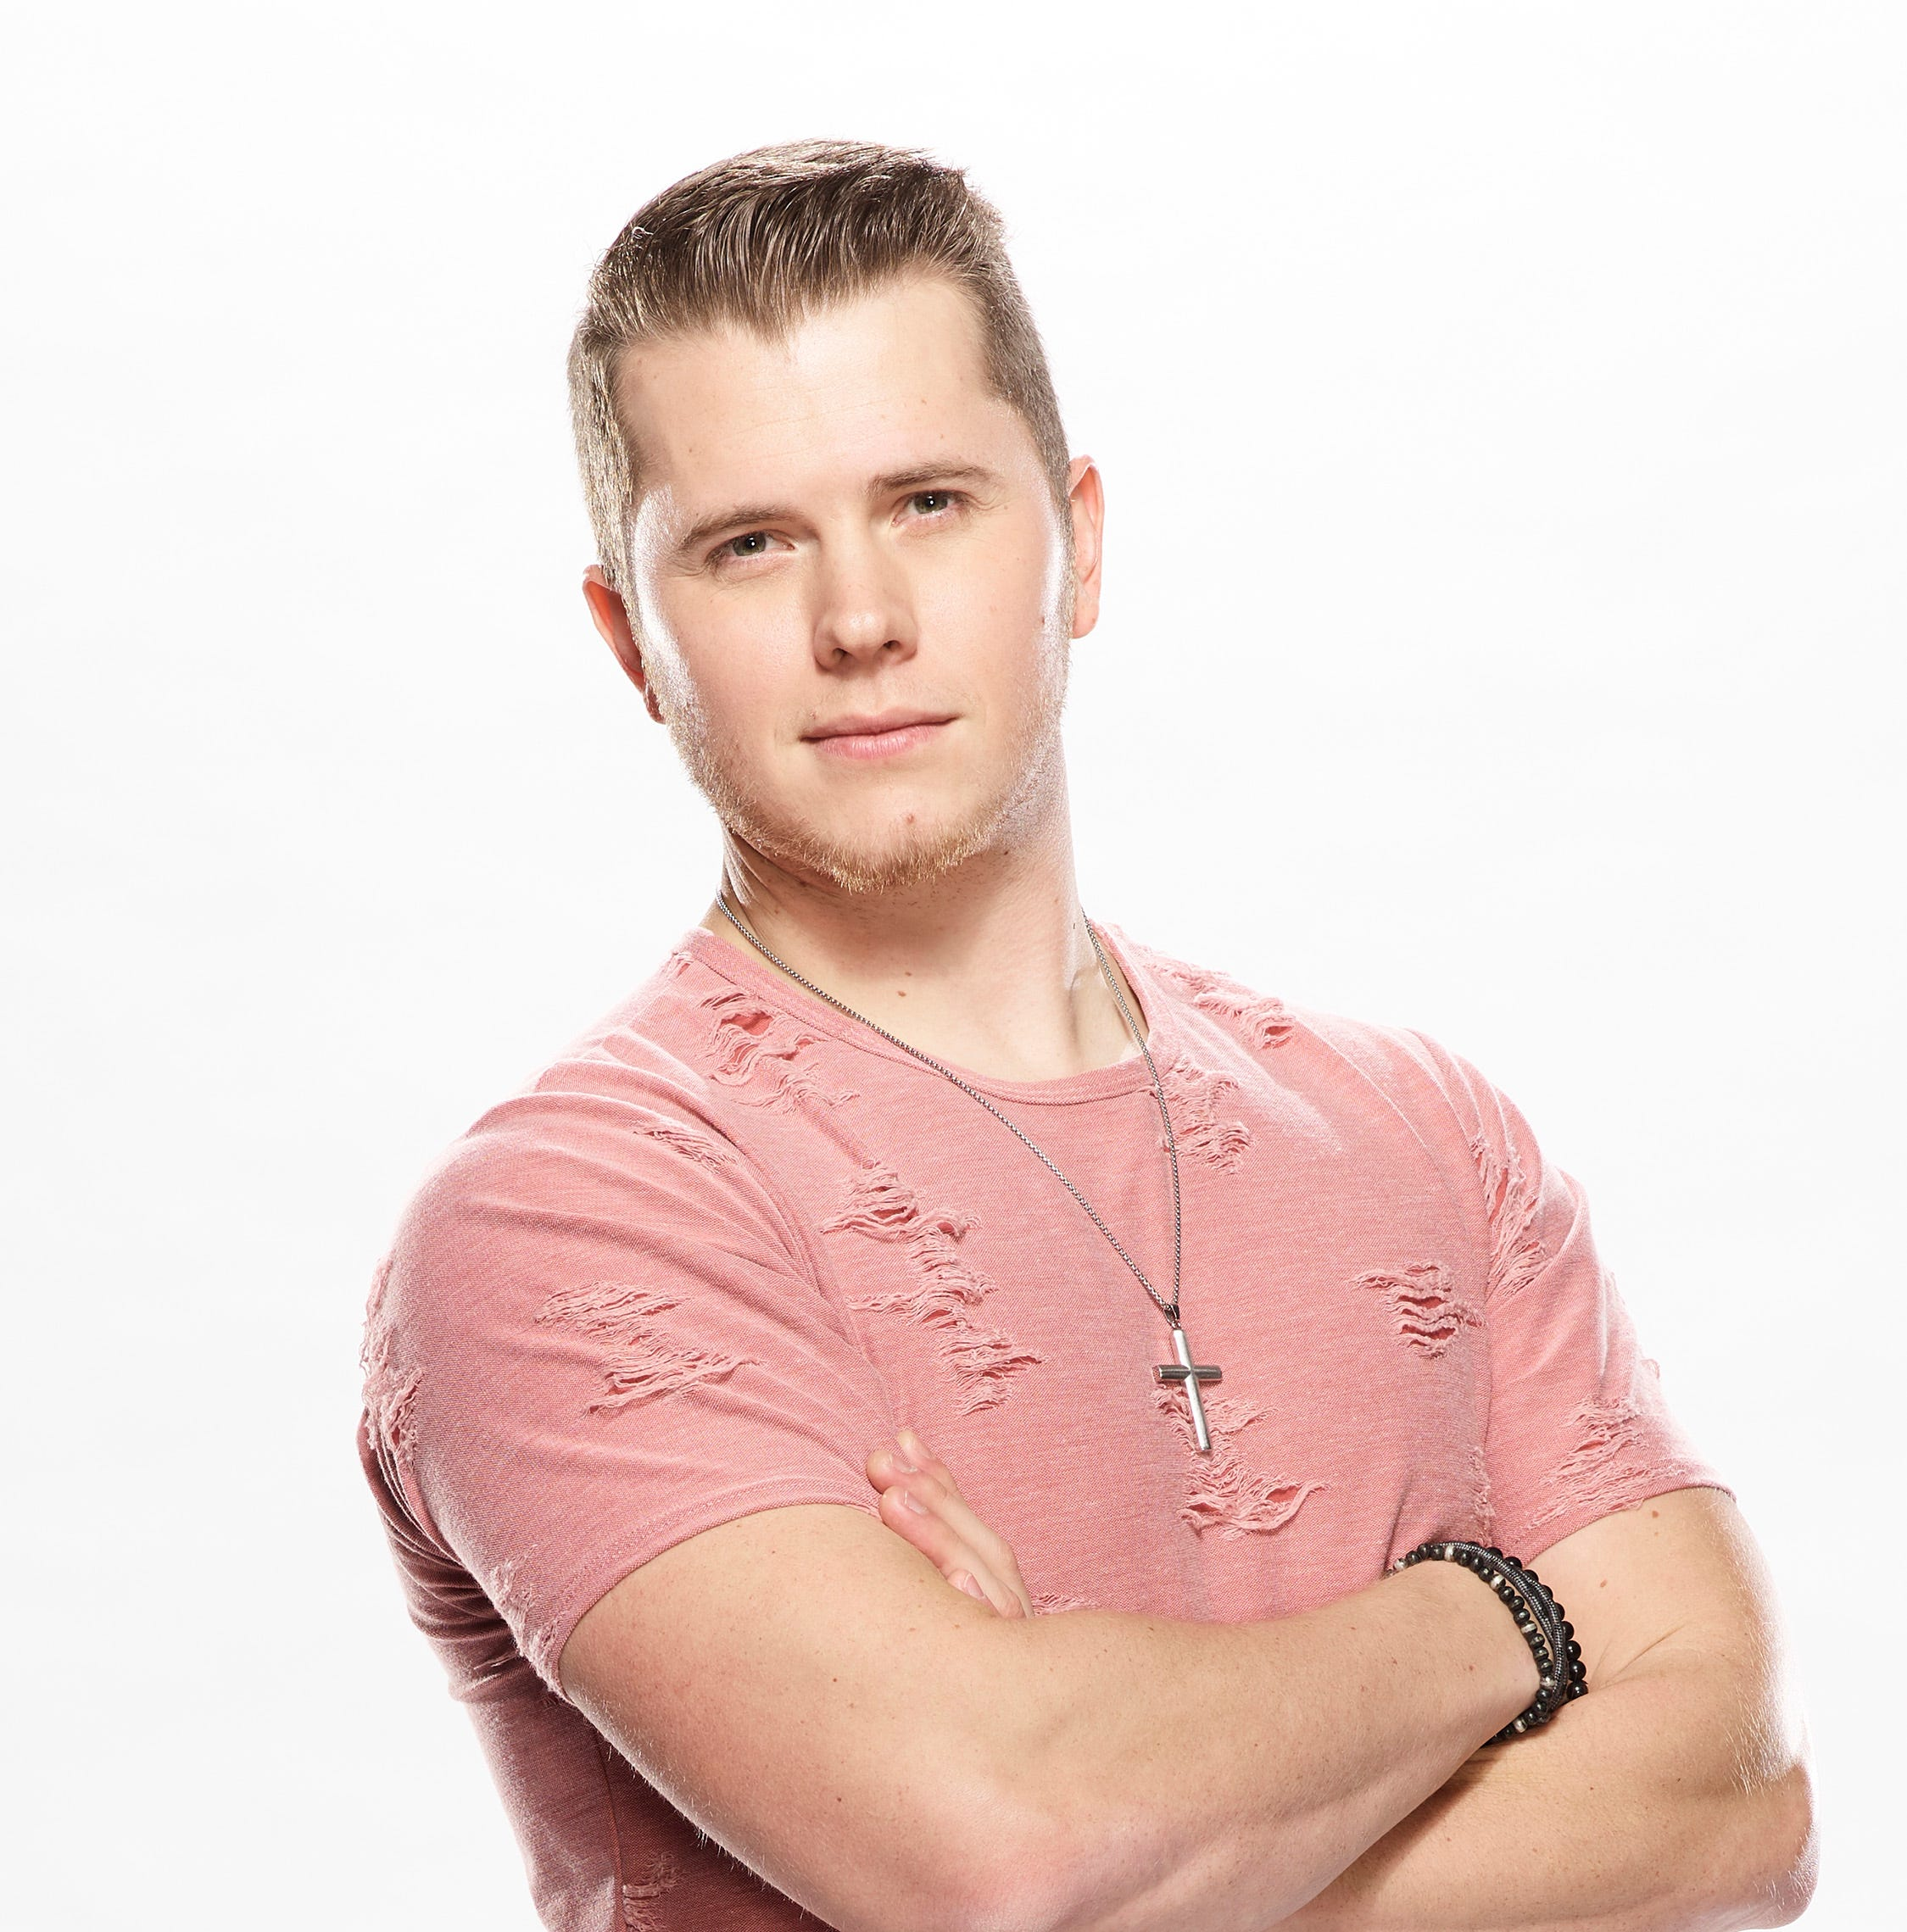 Louisiana's Gyth Rigdon edged out in 'The Voice' finale